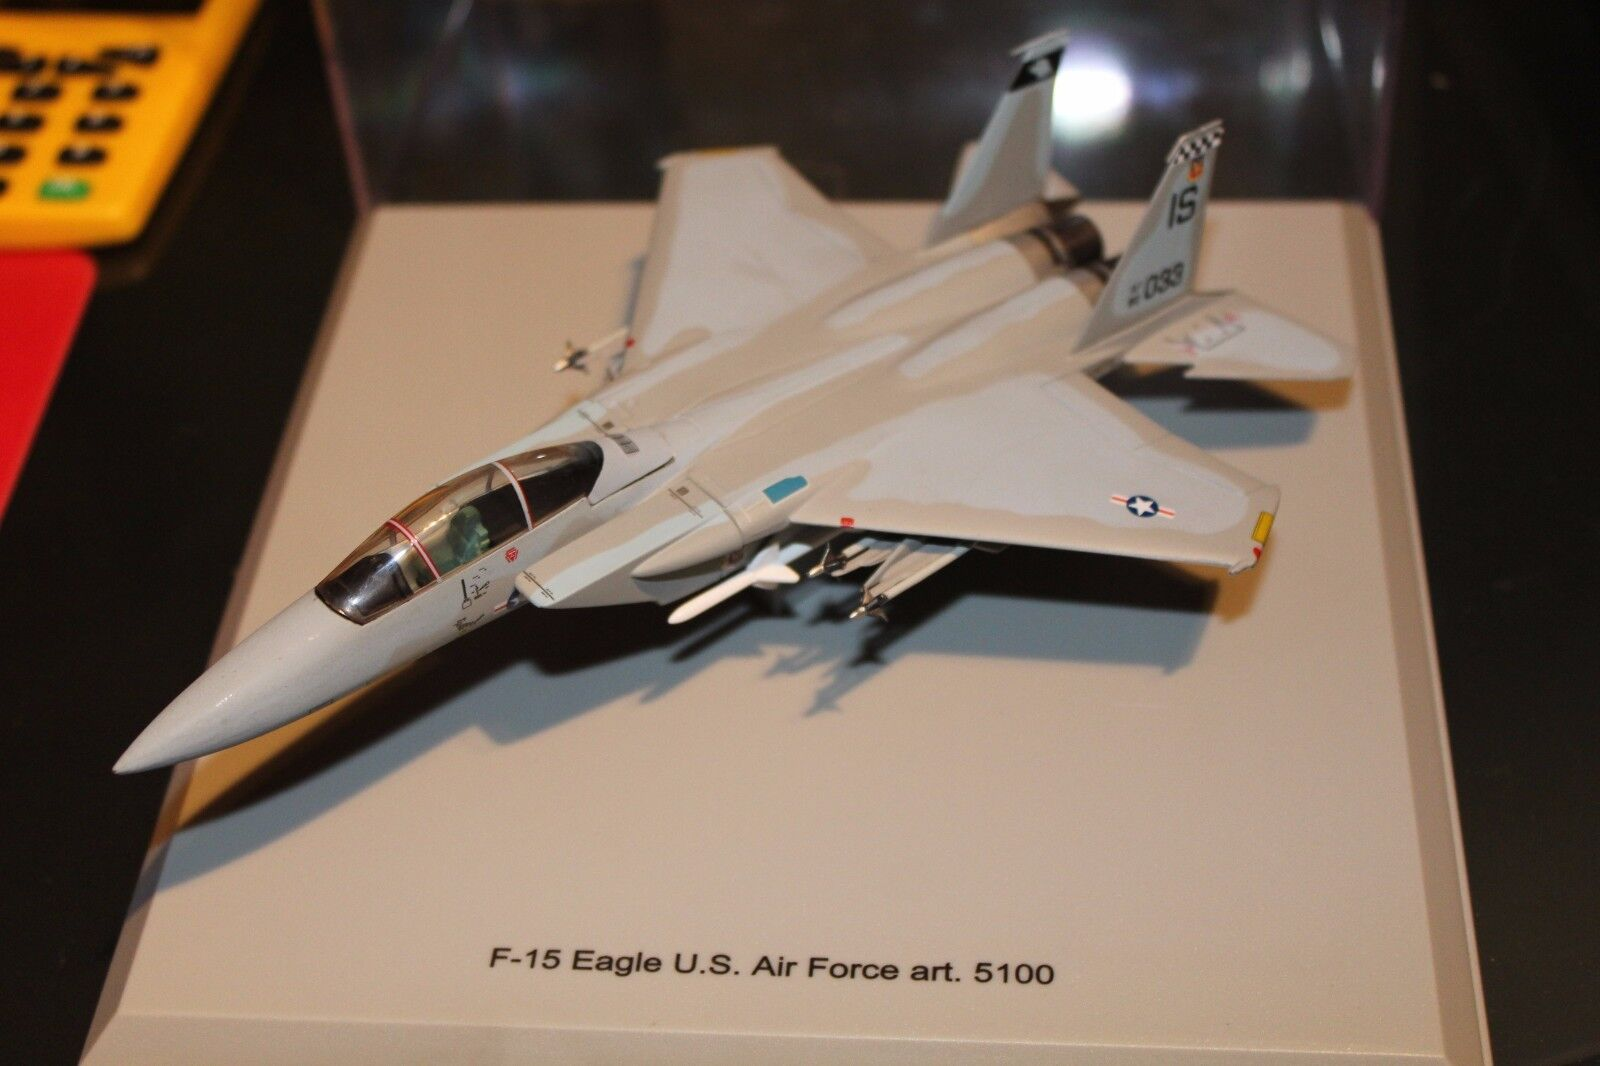 F-15 Eagle U.S.Air Force, Franklin Mint, 1 100, Art.5100